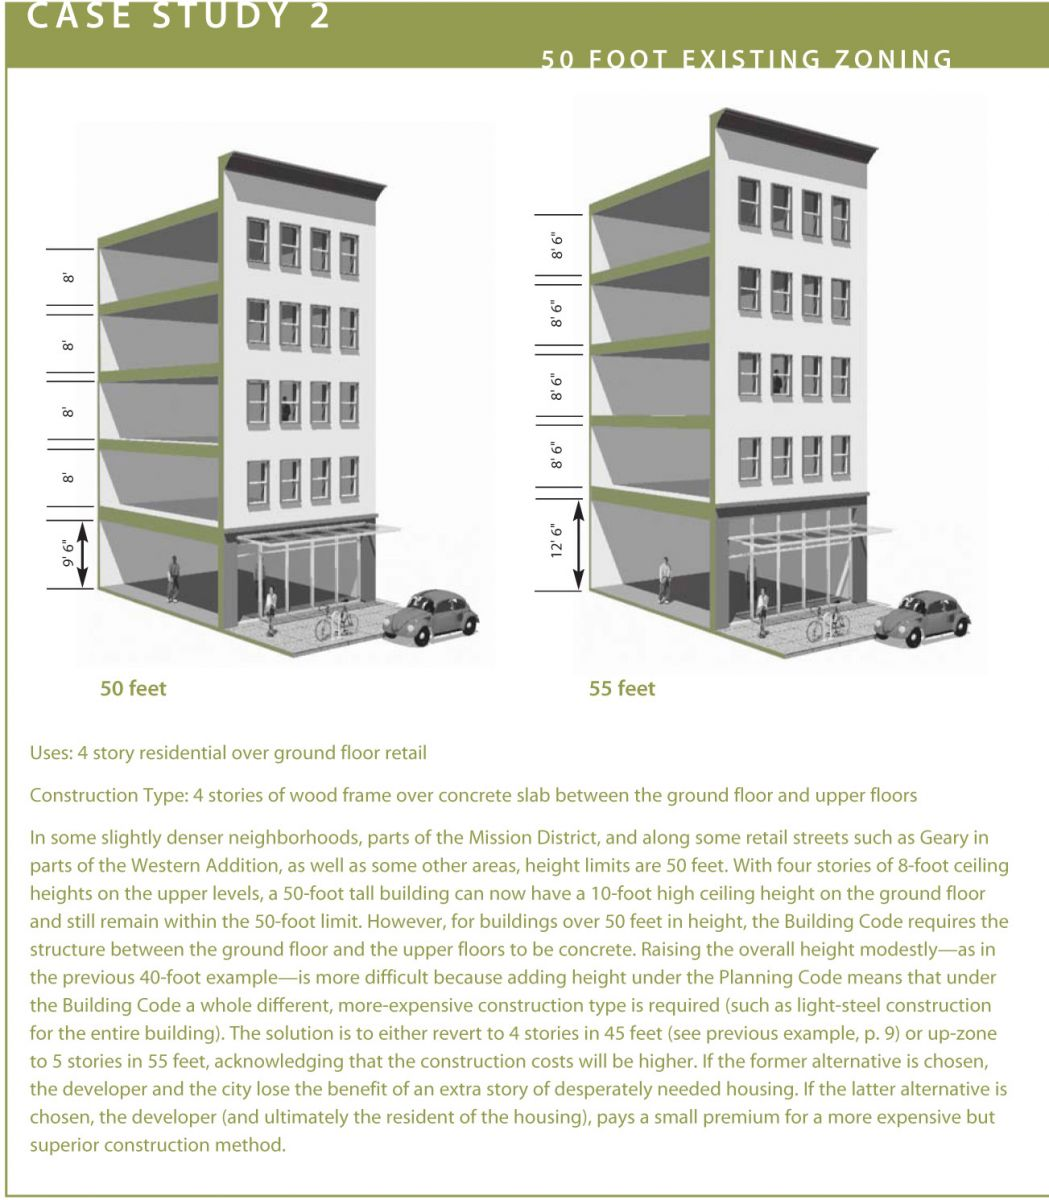 david baker architects it s the ceiling heights for one thing click here to read case study 2